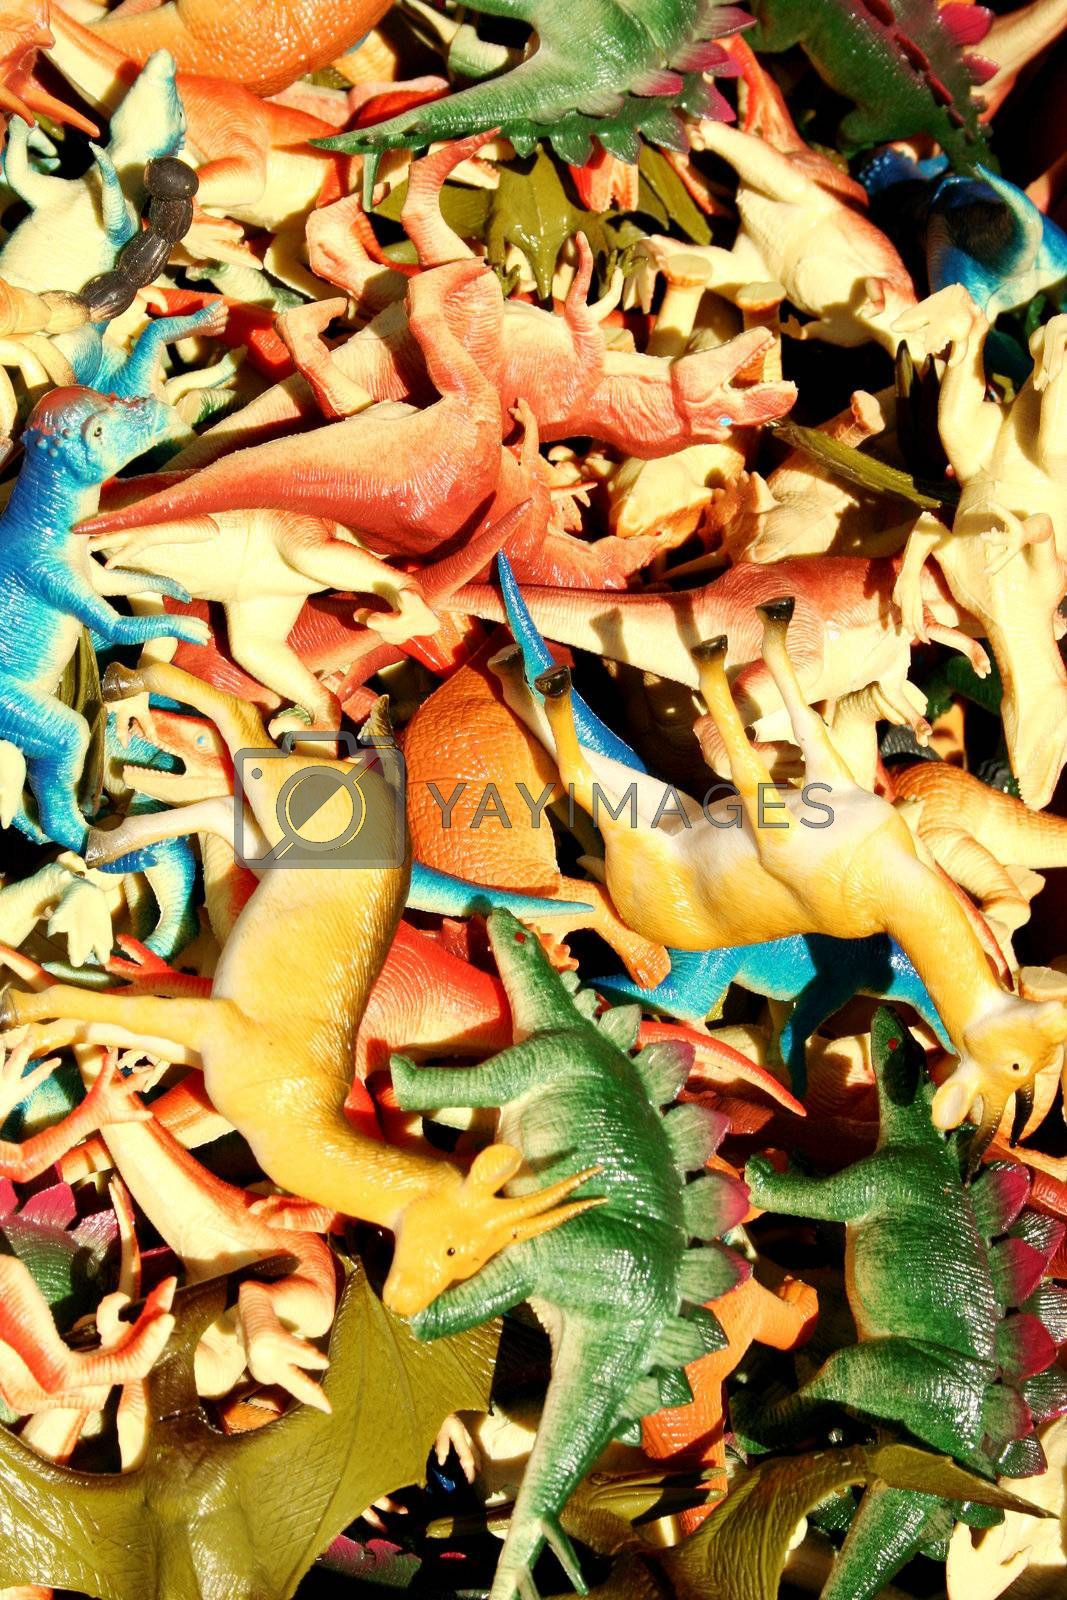 assorted Plastic animals for sale at the flea market